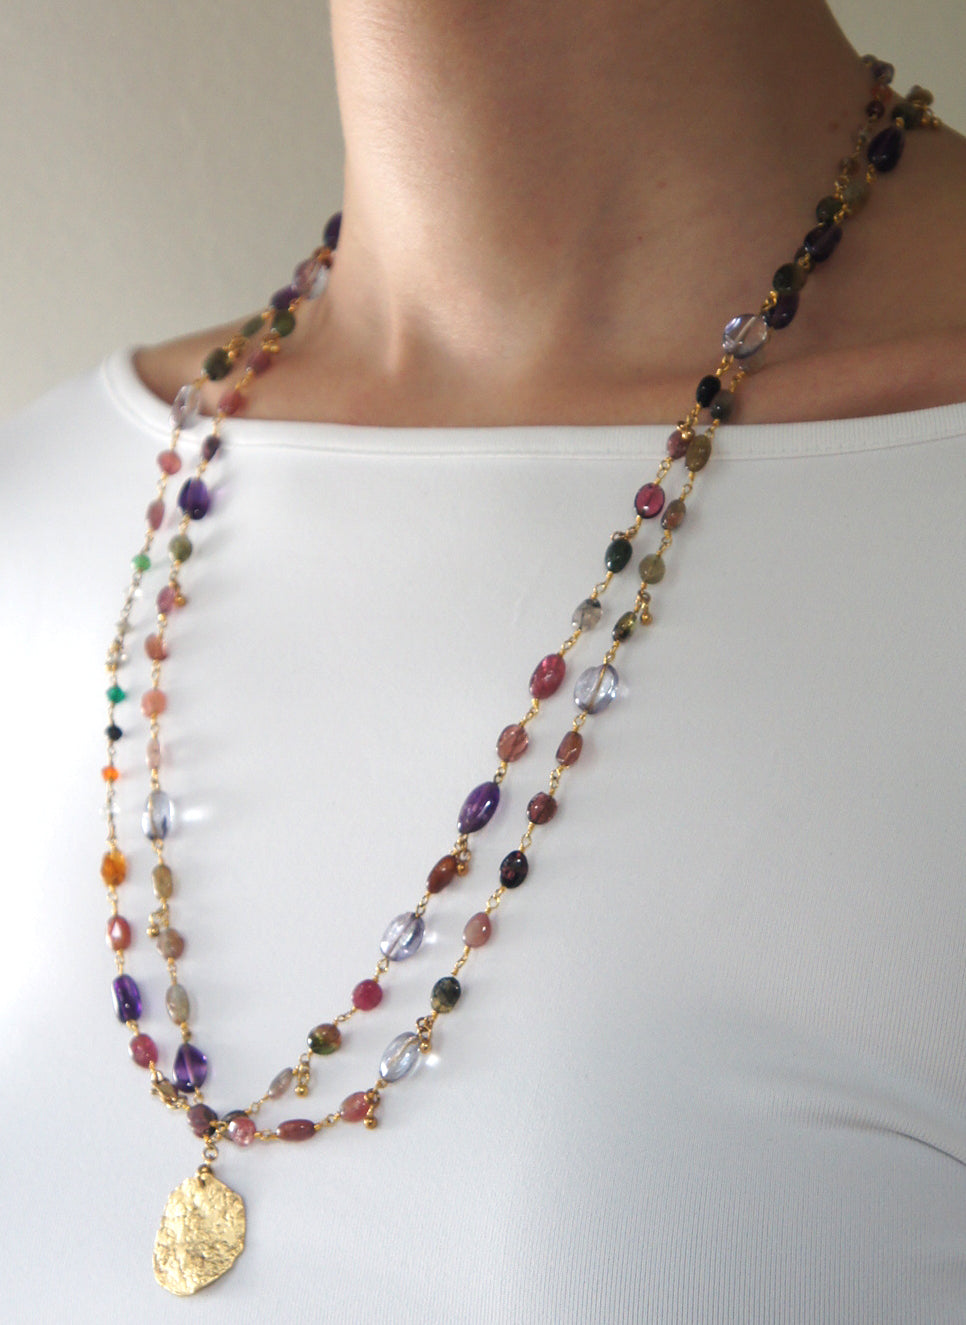 FINE NECKLACE VARDIT - Ava Cadiz